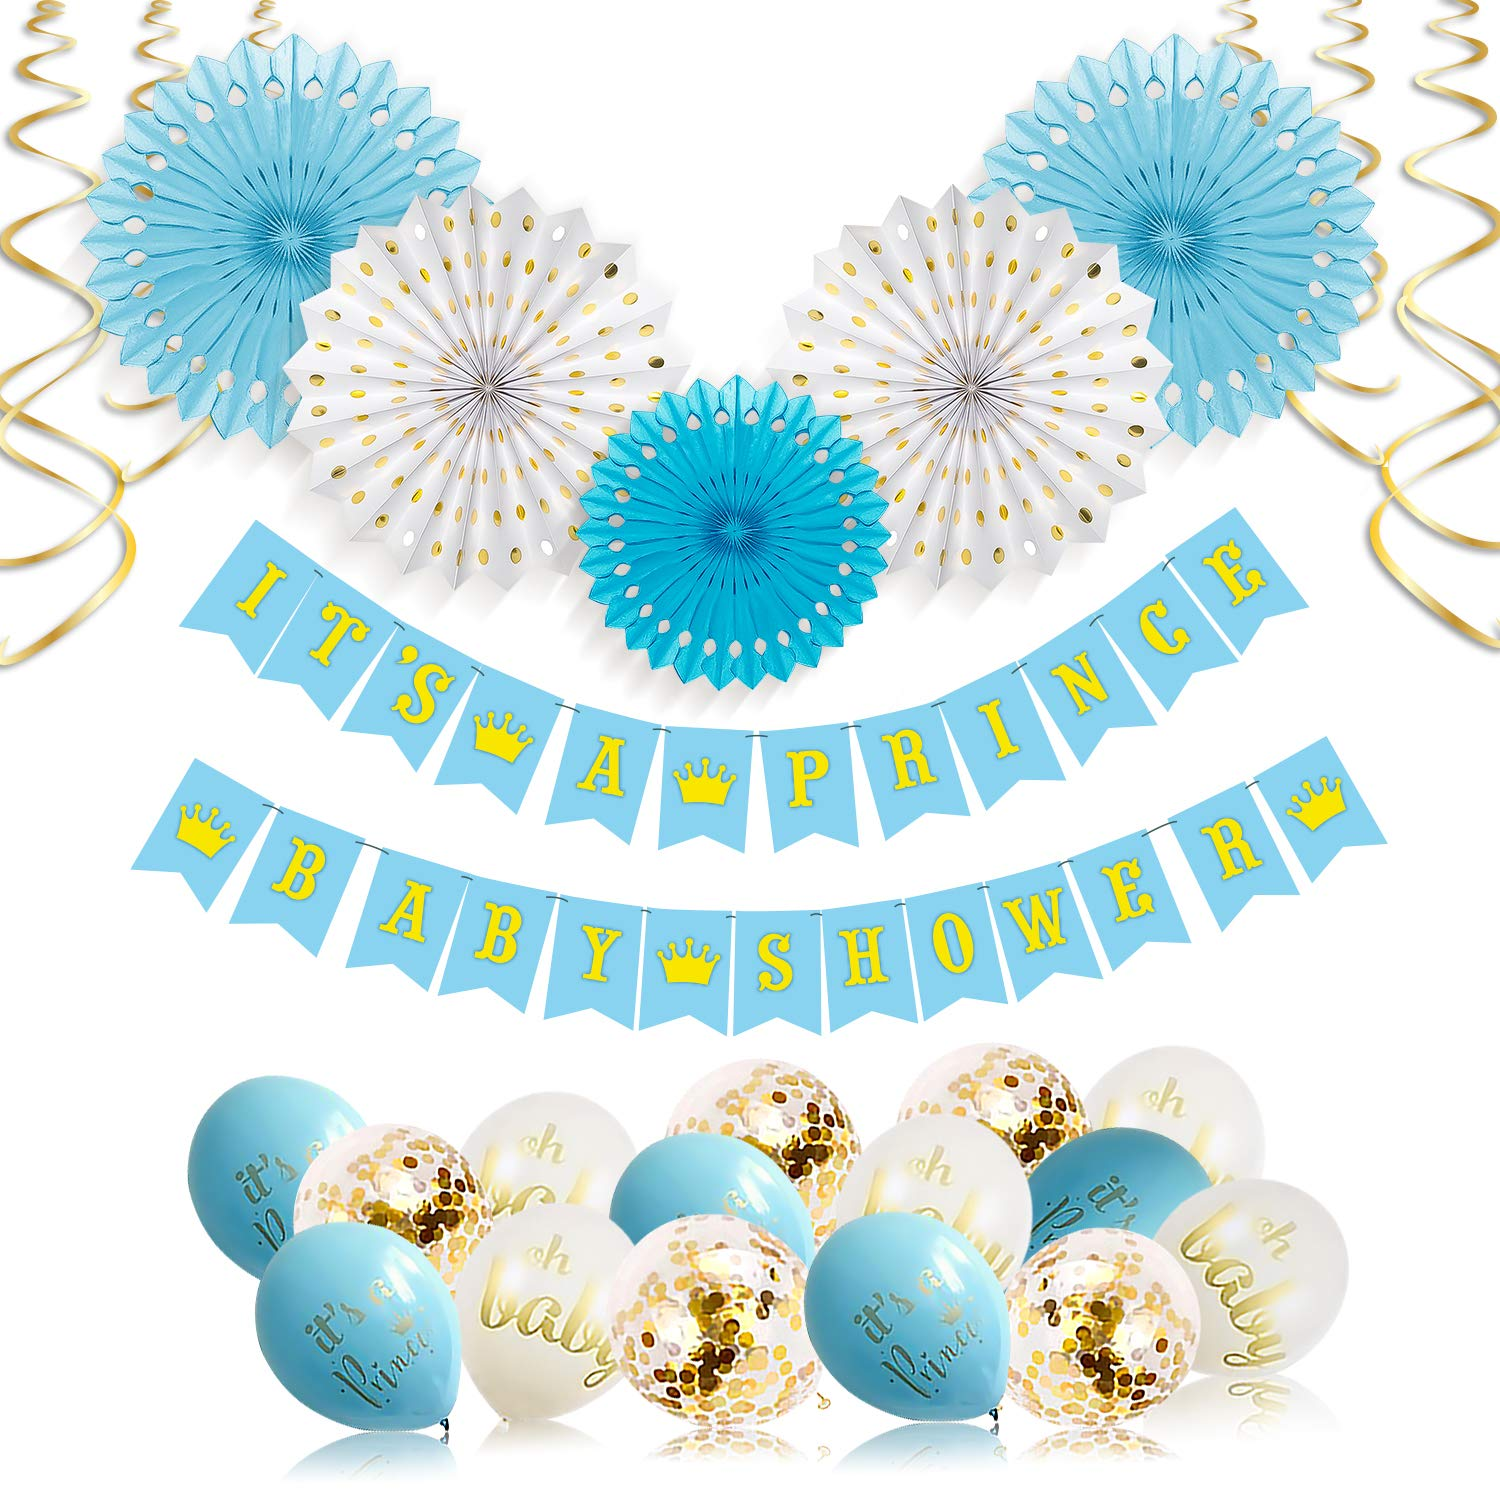 Its A Prince Baby Shower Decorations for Boy - 55 Piece Boys Baby Shower  Decoration Blue/White/Gold/Rose Gold - Boy Baby Shower Banner, Balloons, ...